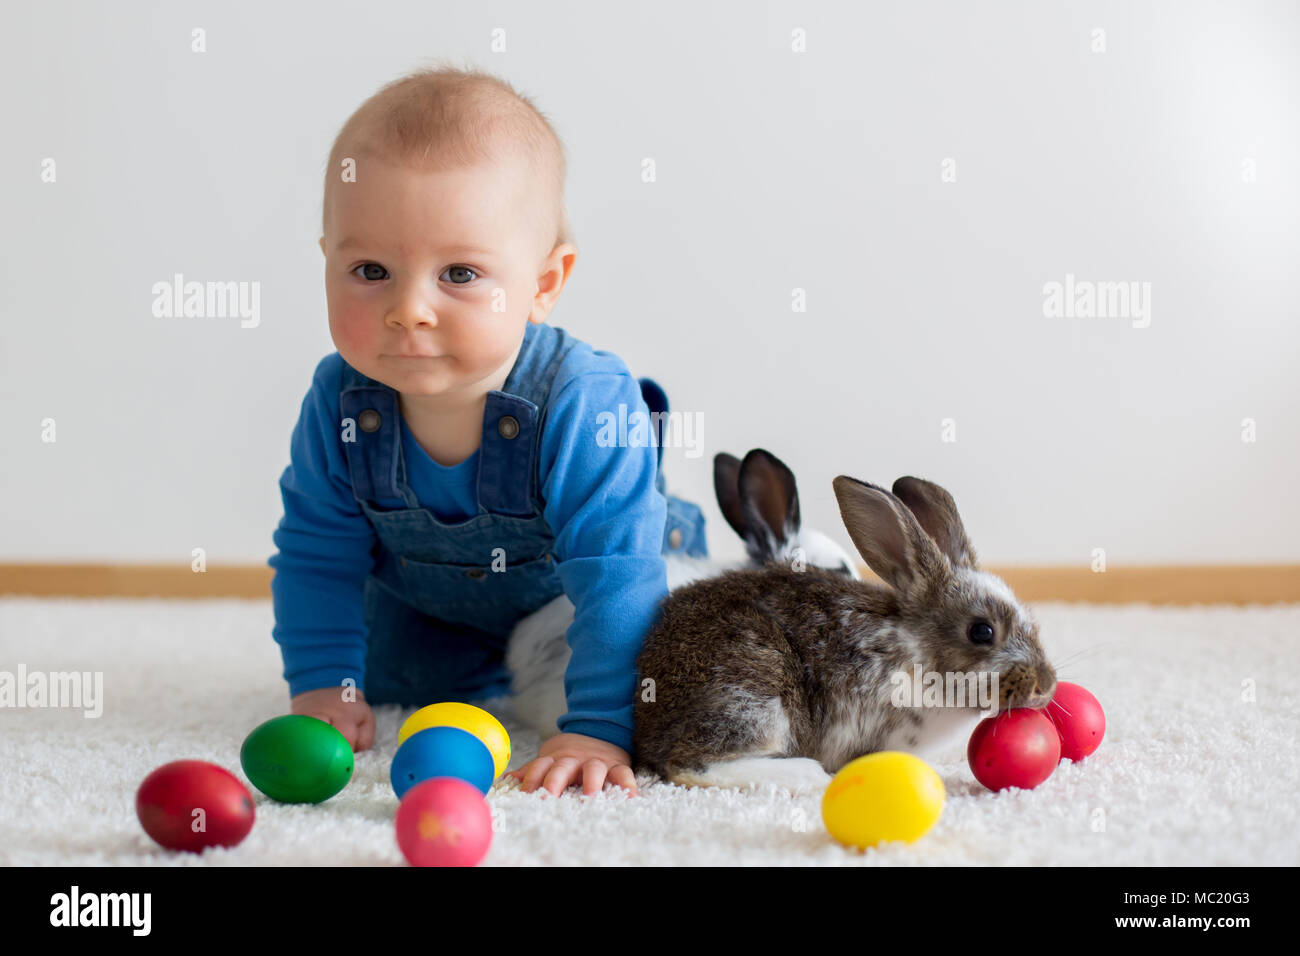 Little Toddler Child Baby Boy Playing With Bunnies And Easter Eggs At Home Colorful Hand Drawings On The